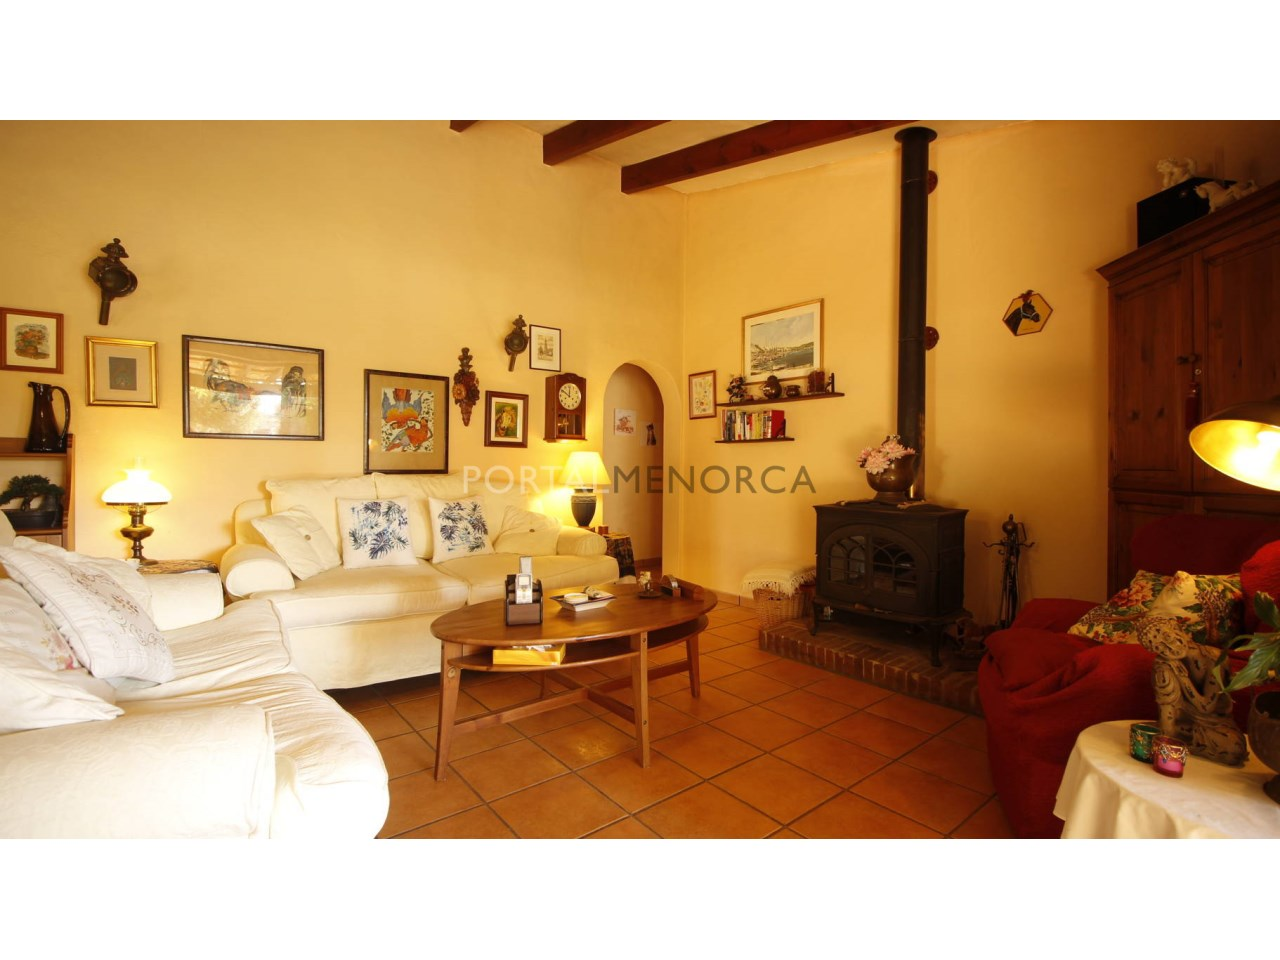 Country house for sale in Menorca with a living-room with fireplace